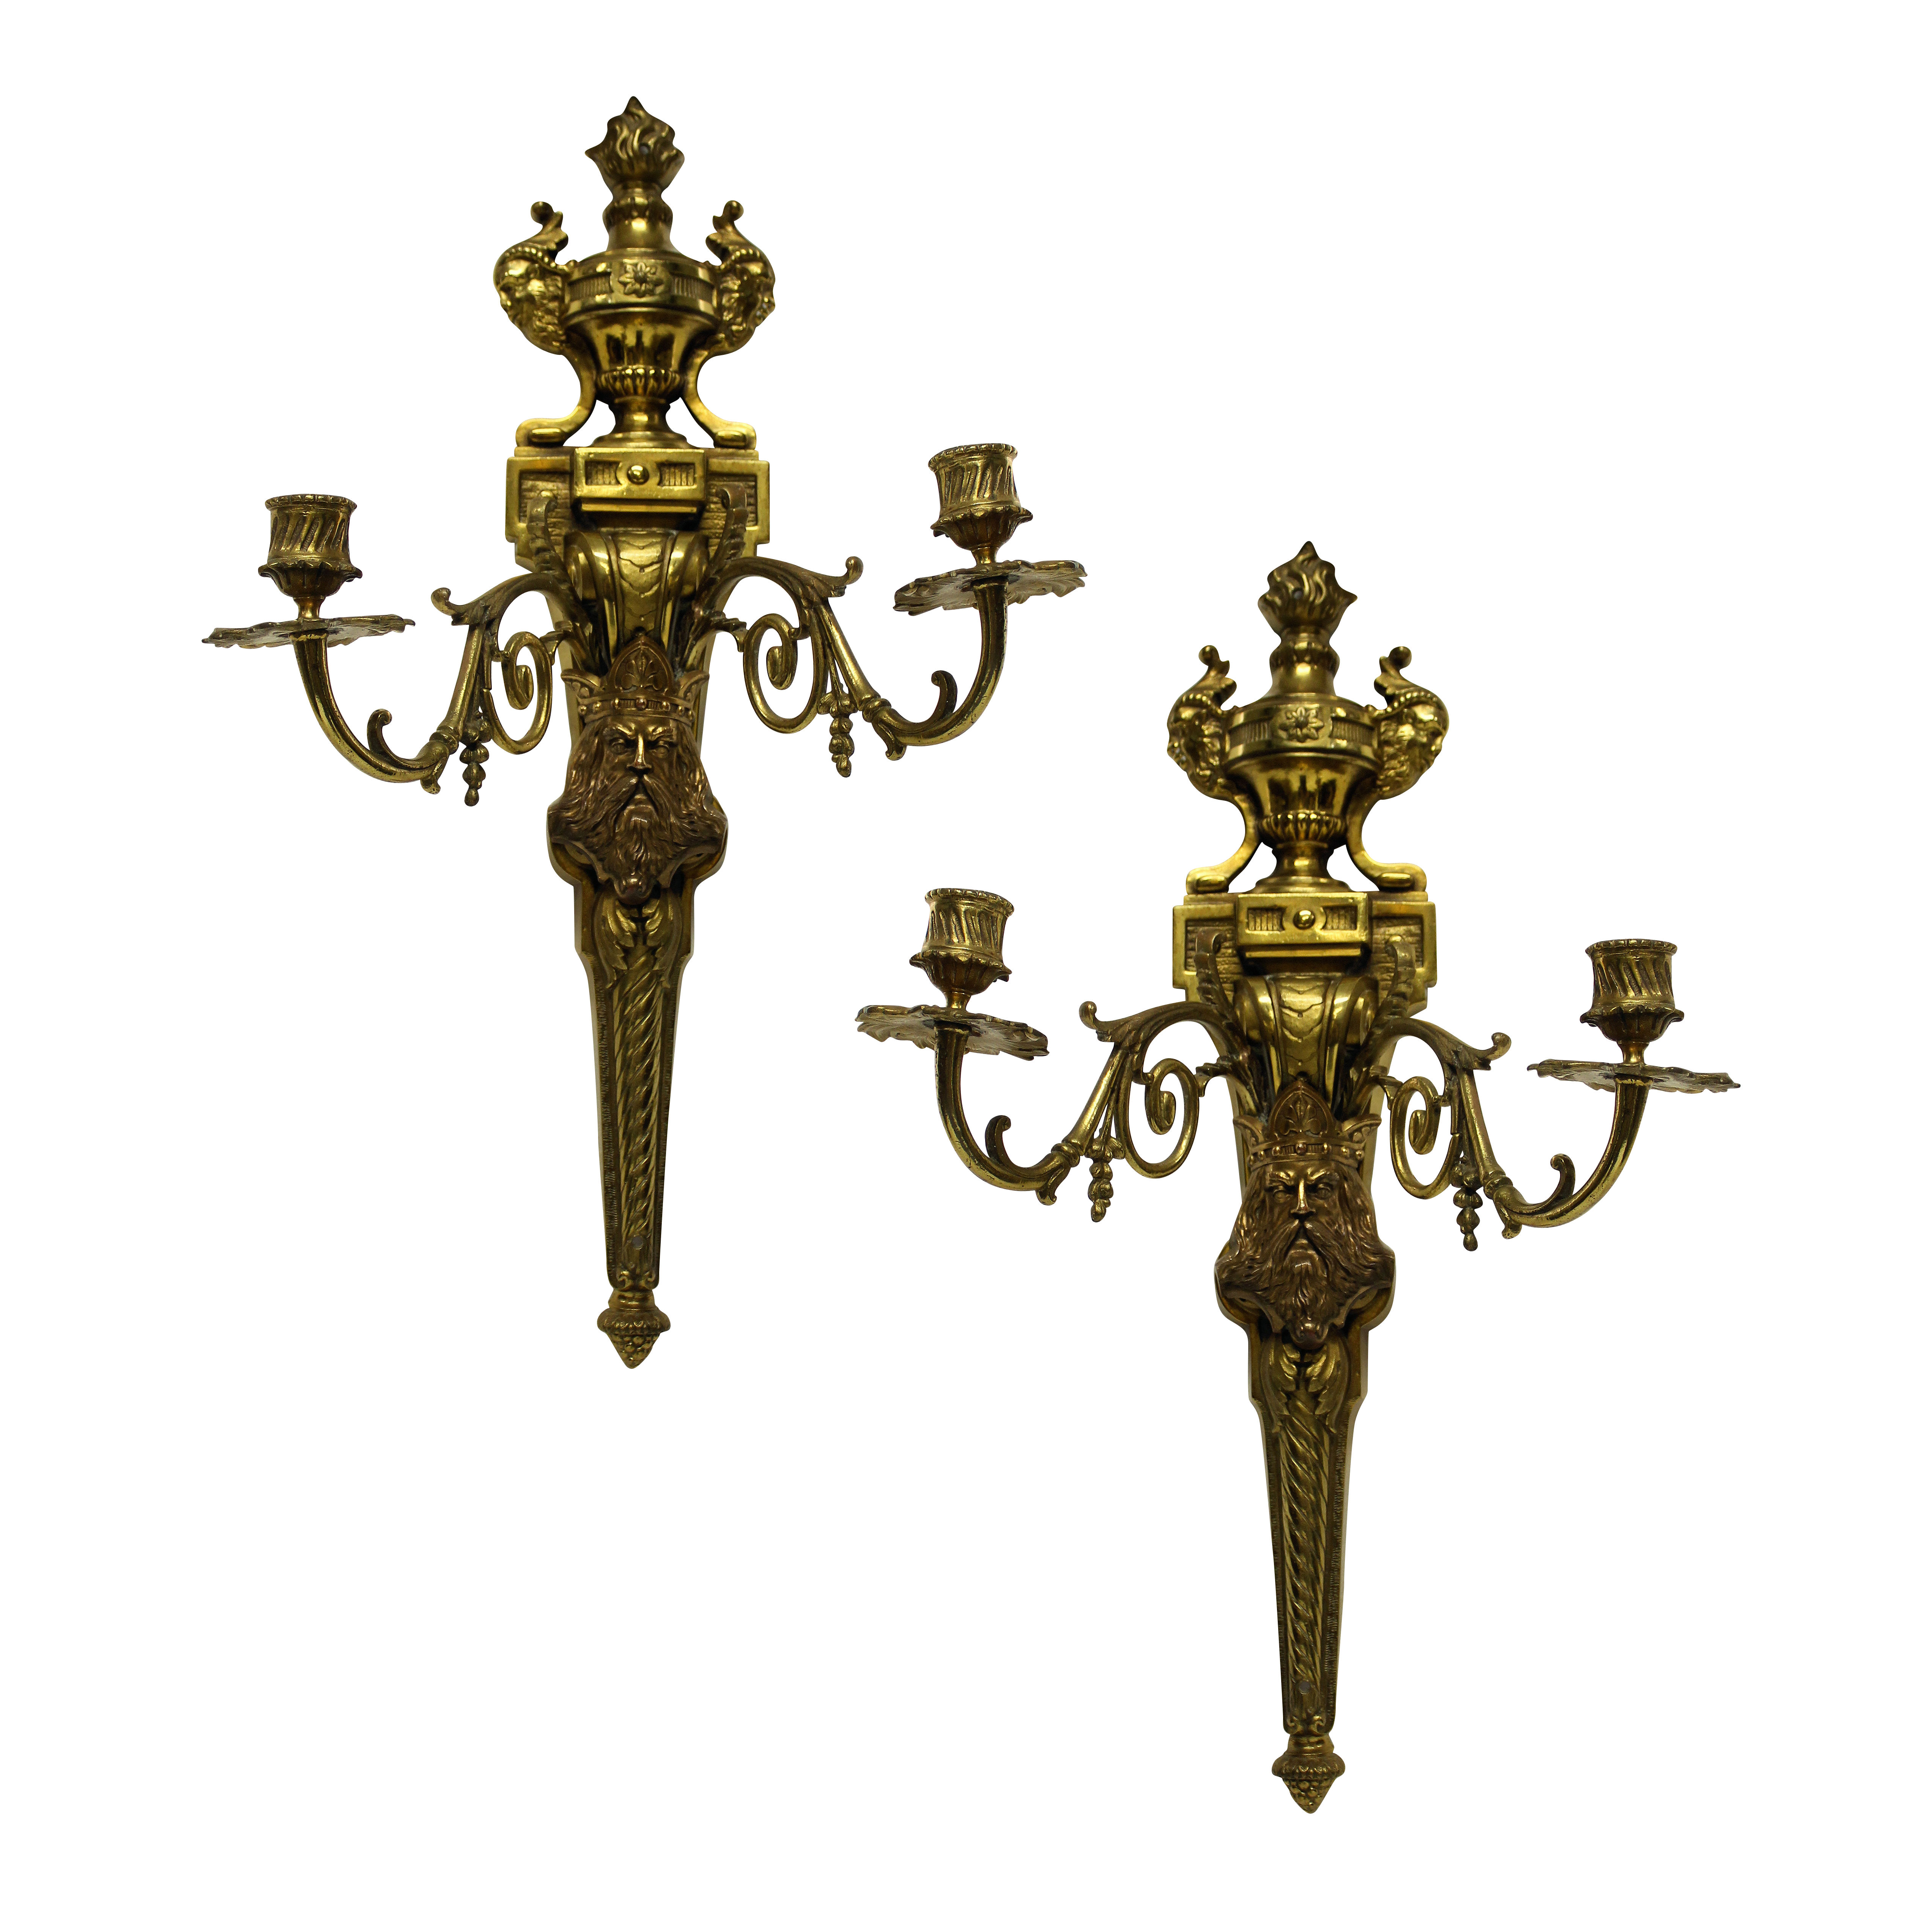 A PAIR OF GILT BRONZE WALL SCONCES DEPICTING KINGS